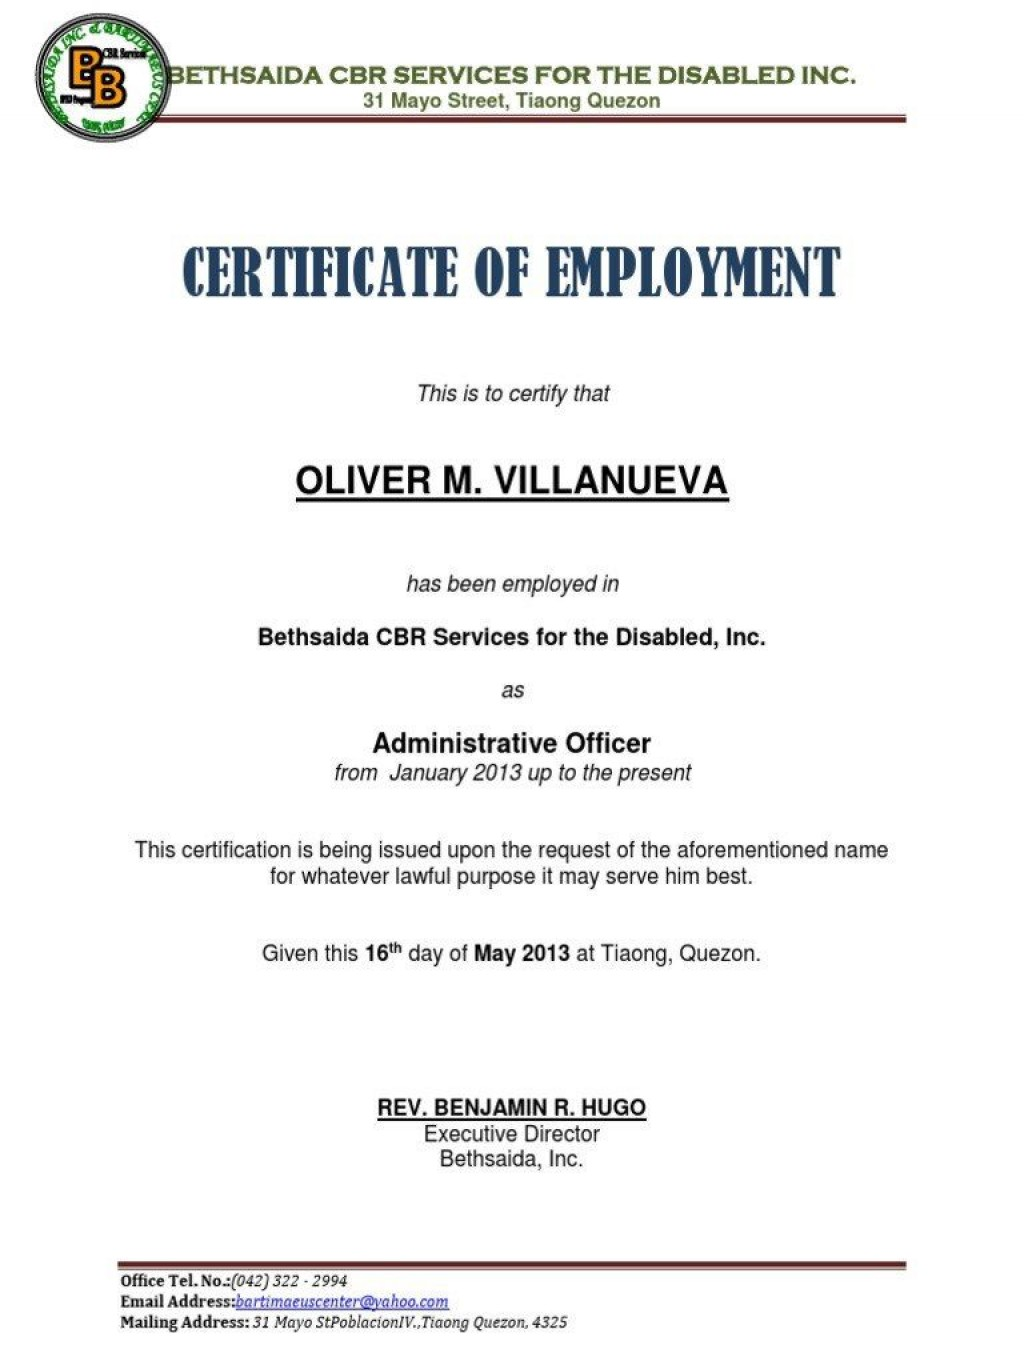 006 Rare Certificate Of Employment Template Highest Quality  Nz Sample Word Format FreeLarge